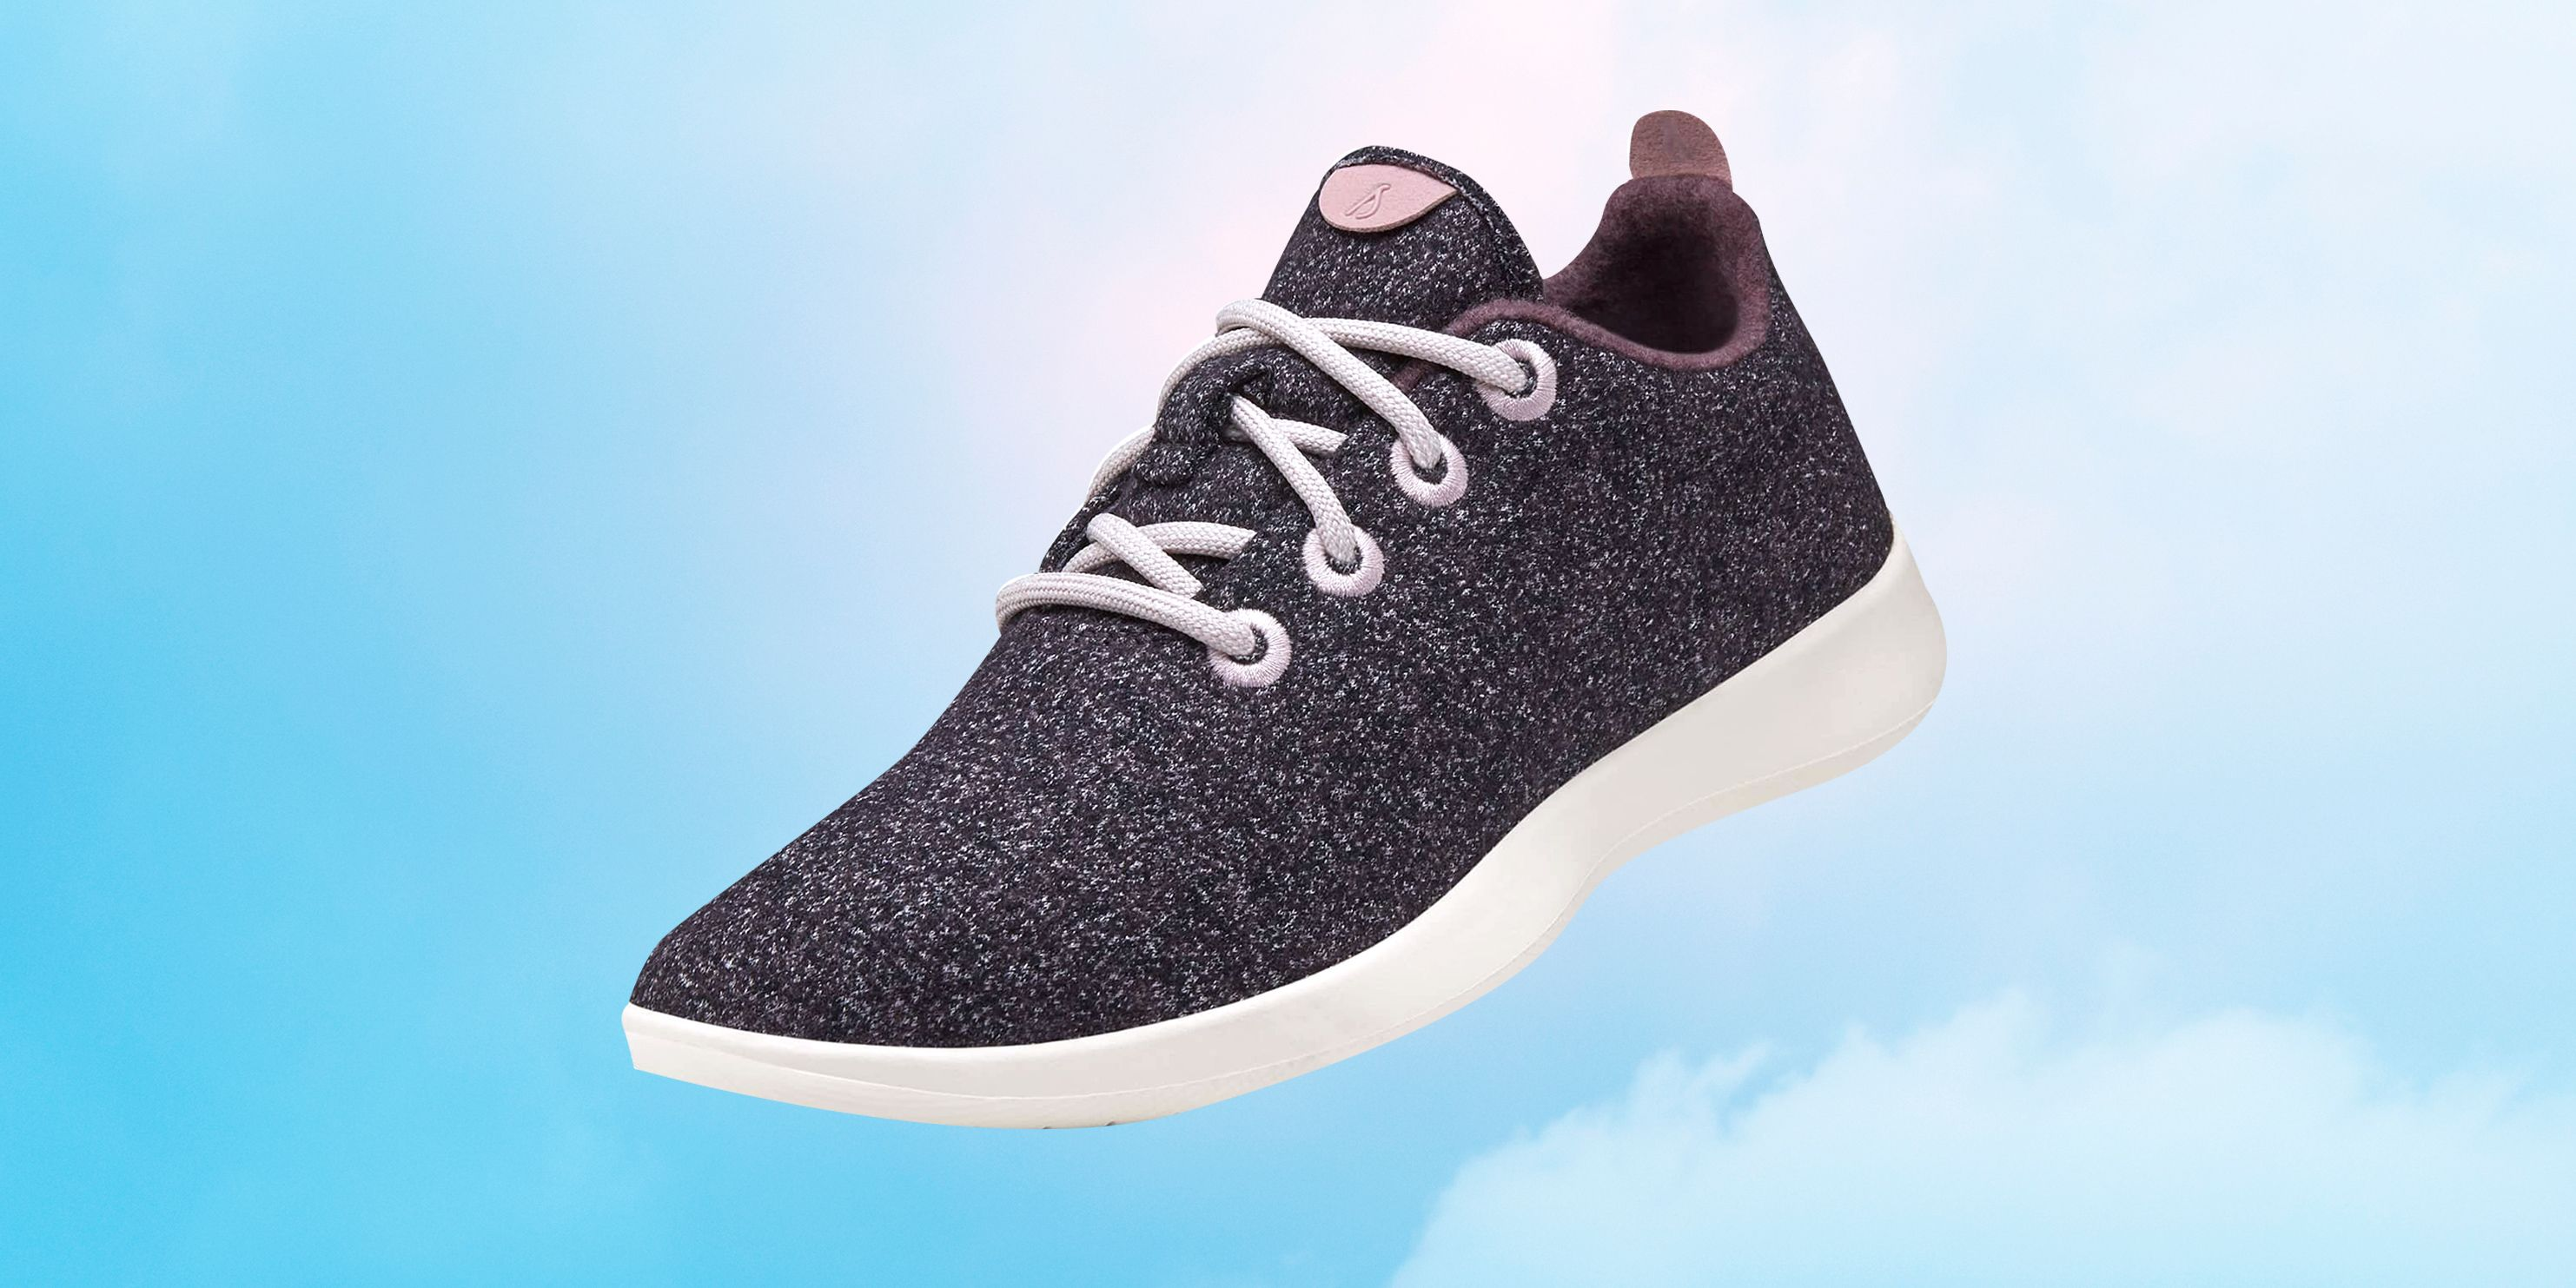 40f32ce9e91 Allbirds Review  Are These Wool Shoes Worth It